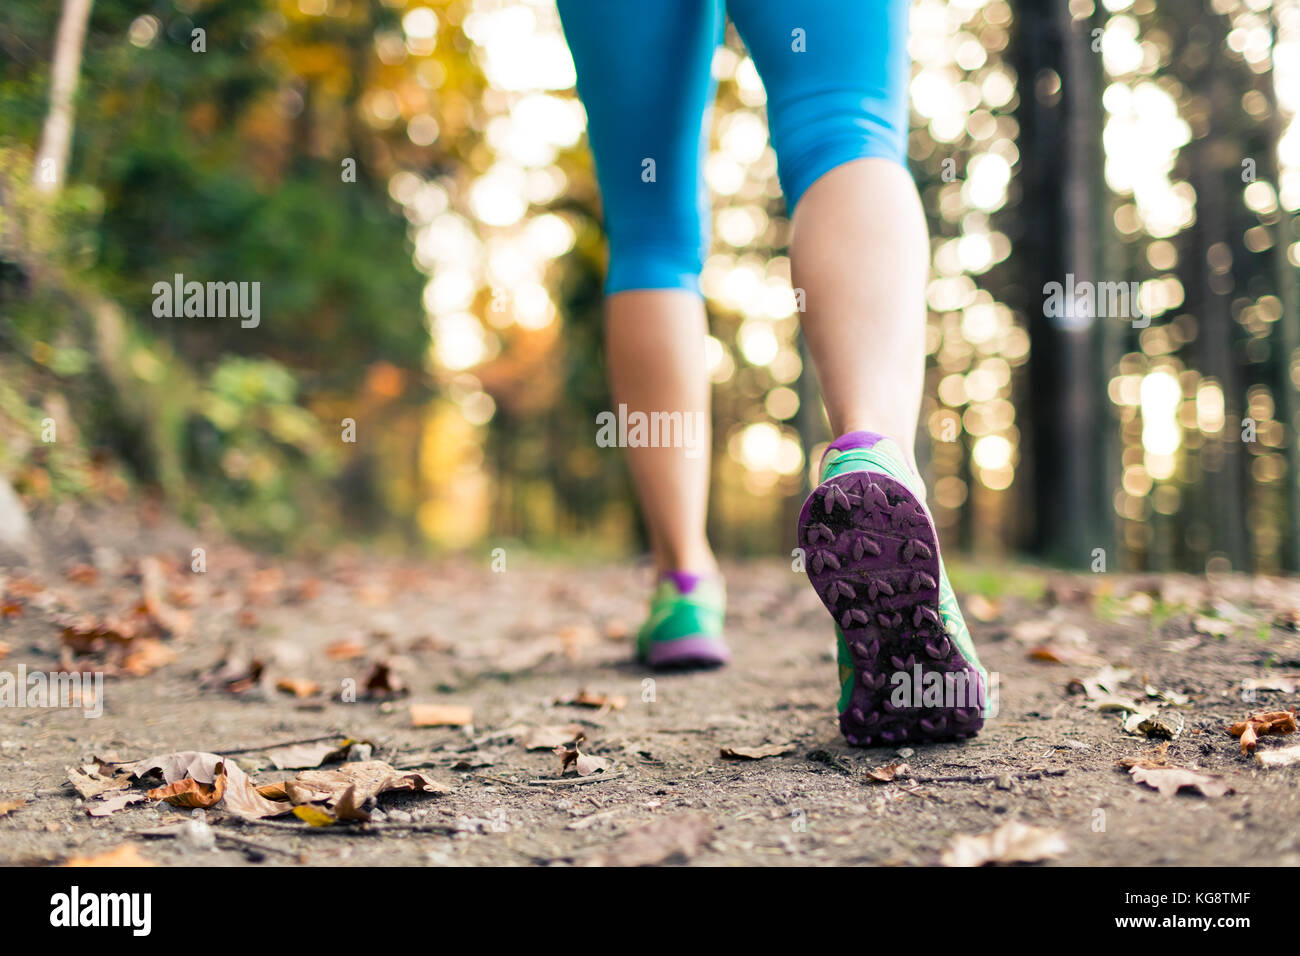 Woman walking and hiking in autumn forest, sport shoes. Jogging, trekking or training outside in autumn nature. Stock Photo